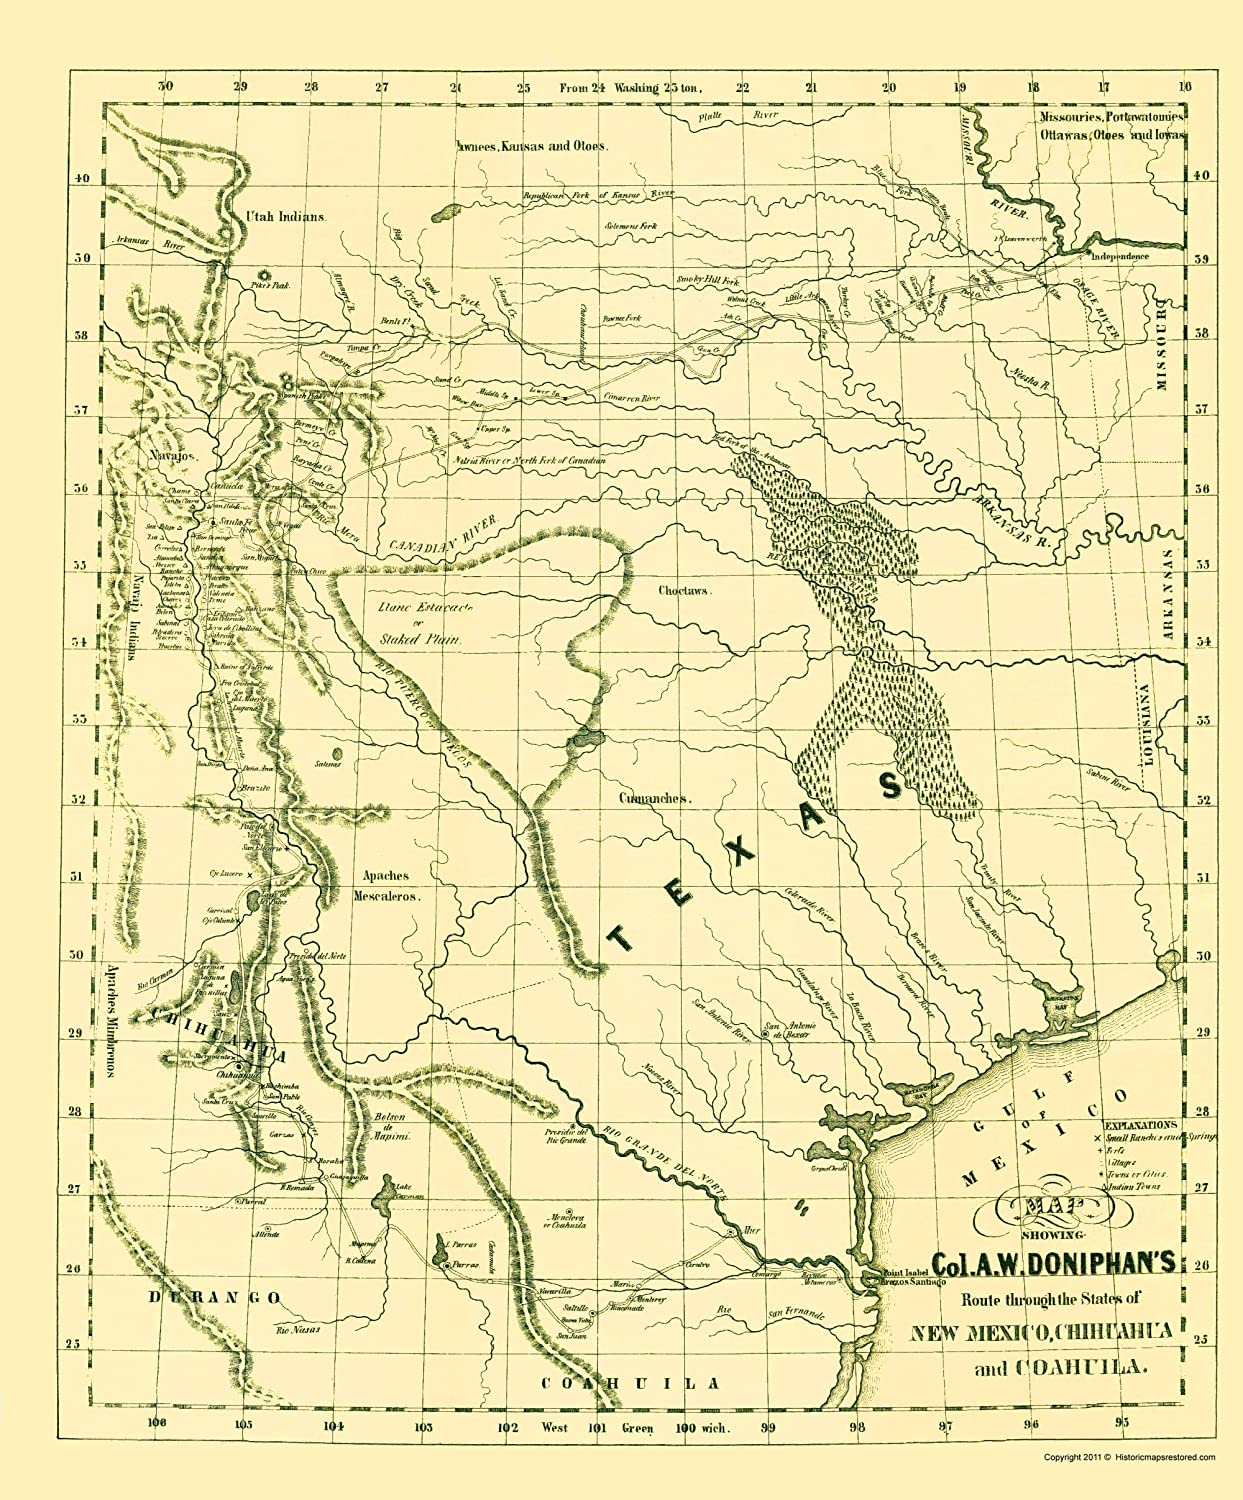 Old North America Map.Amazon Com Old North America Map Col A W Doniphan S Route 1847